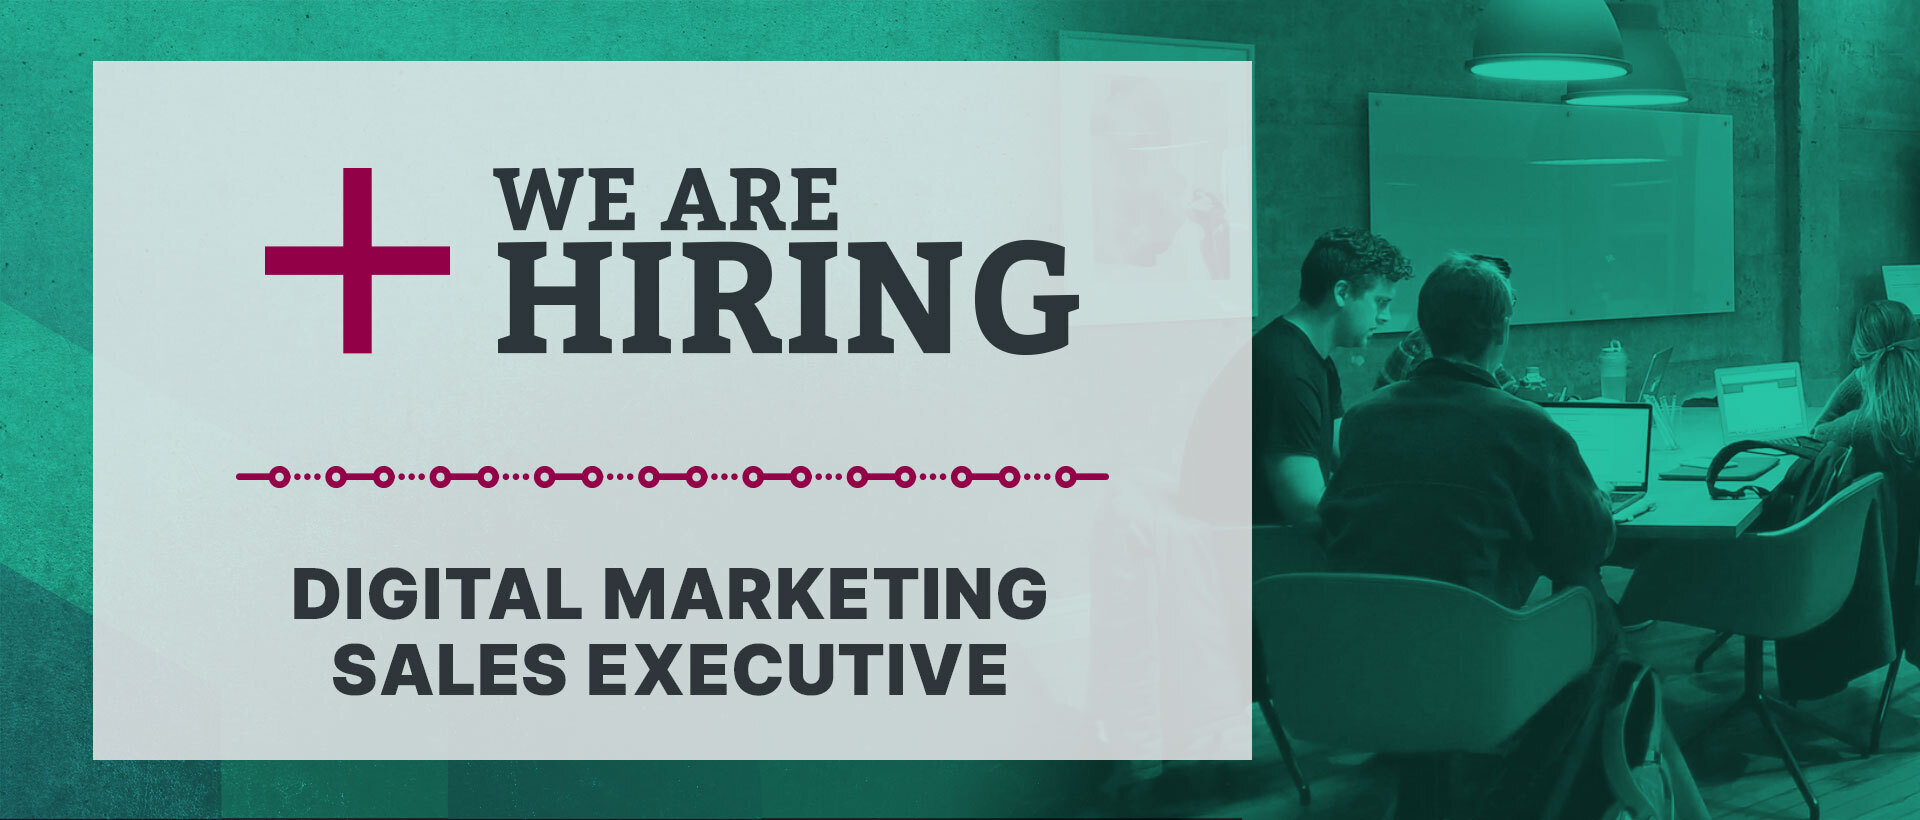 Hiring Creative Digital Marketing Sales Executive